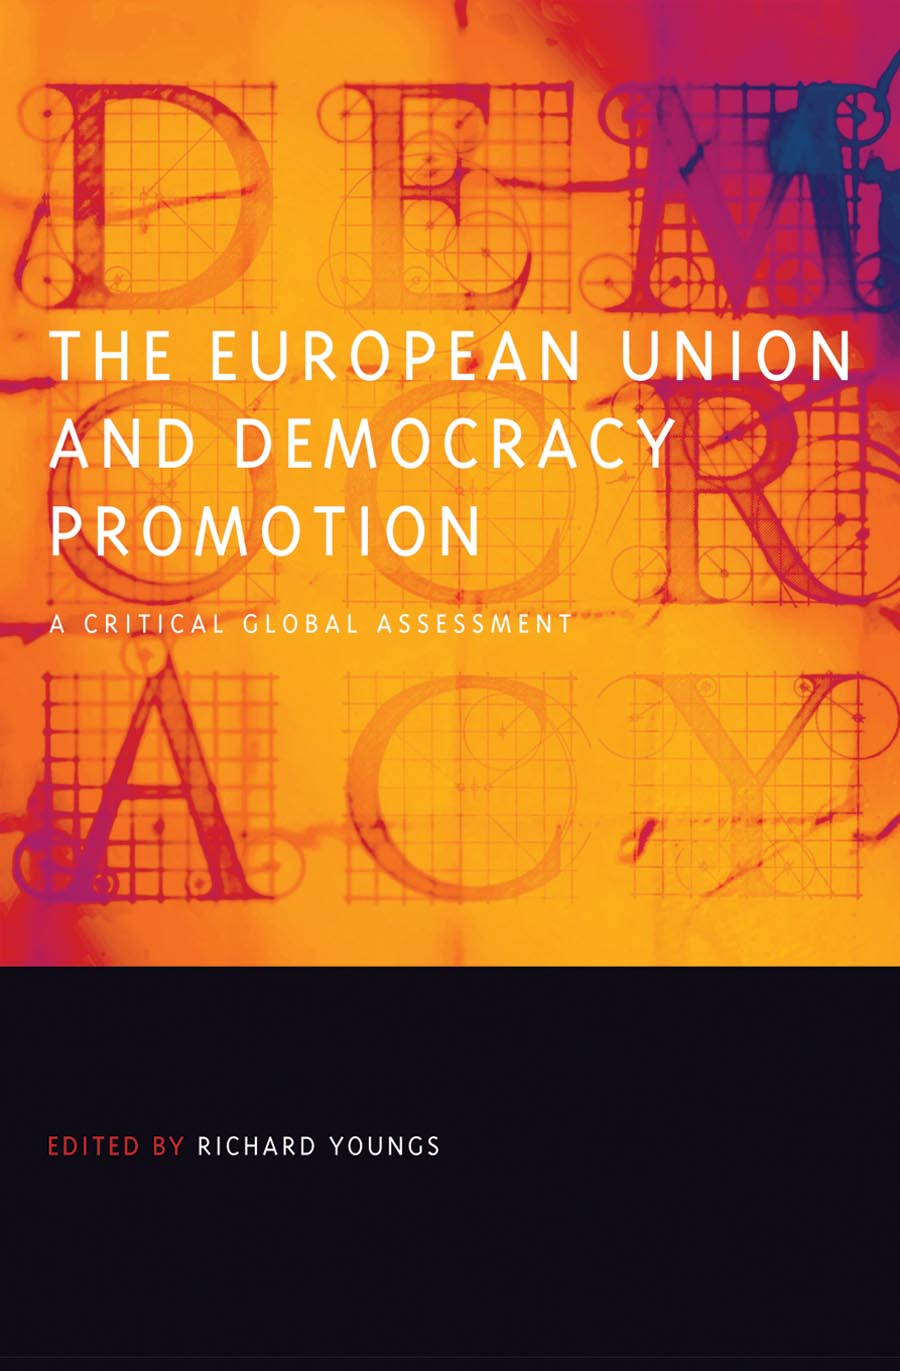 цена на The European Union and Democracy Promotion – A Critical Global Assessment